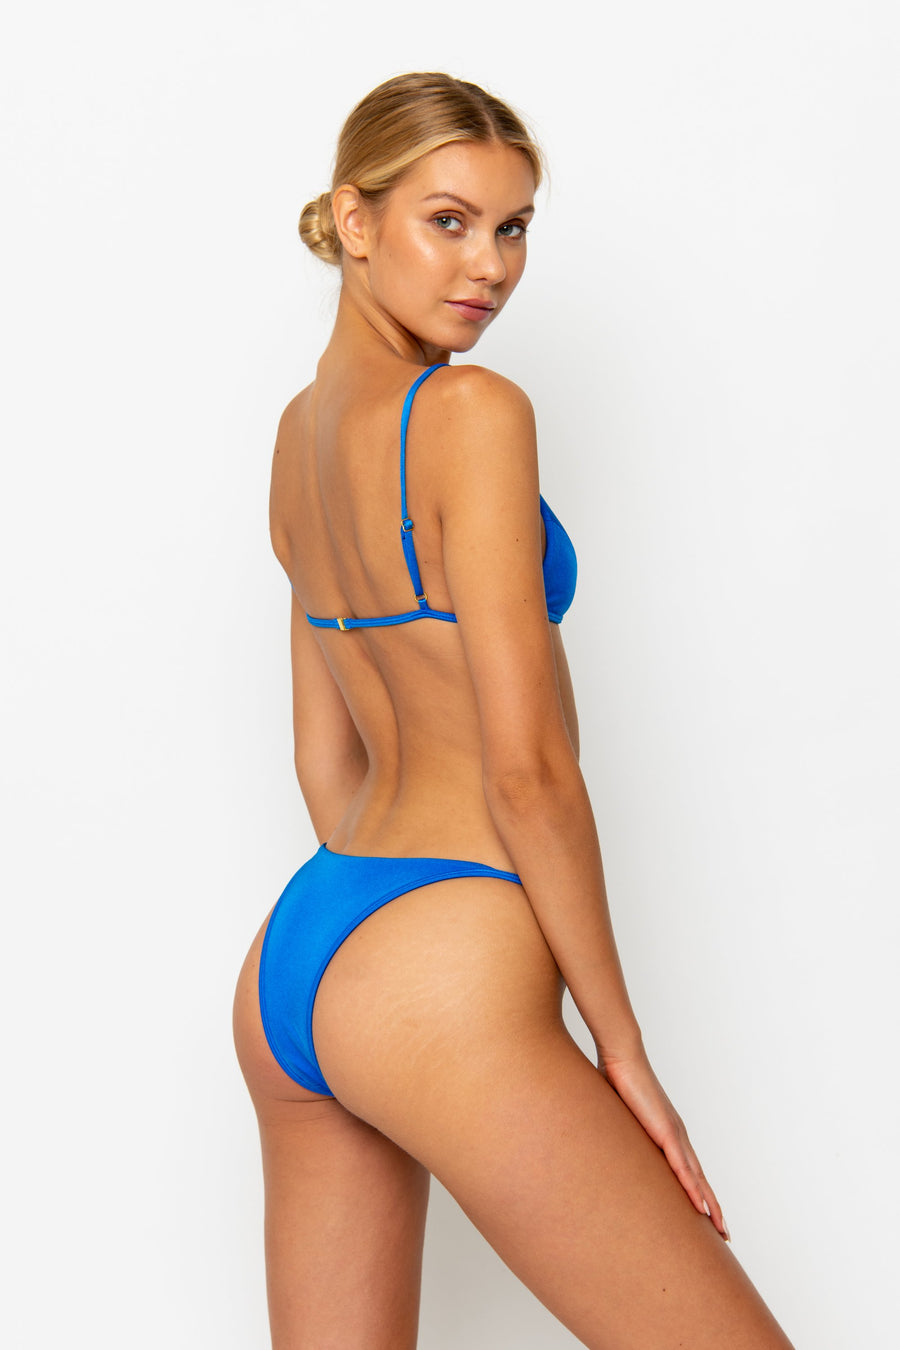 EDEN SIRIUS- Cheeky Bikini Bottoms by Sommer Swim, available on sommerswim.com for $69 Kendall Jenner Shorts SIMILAR PRODUCT